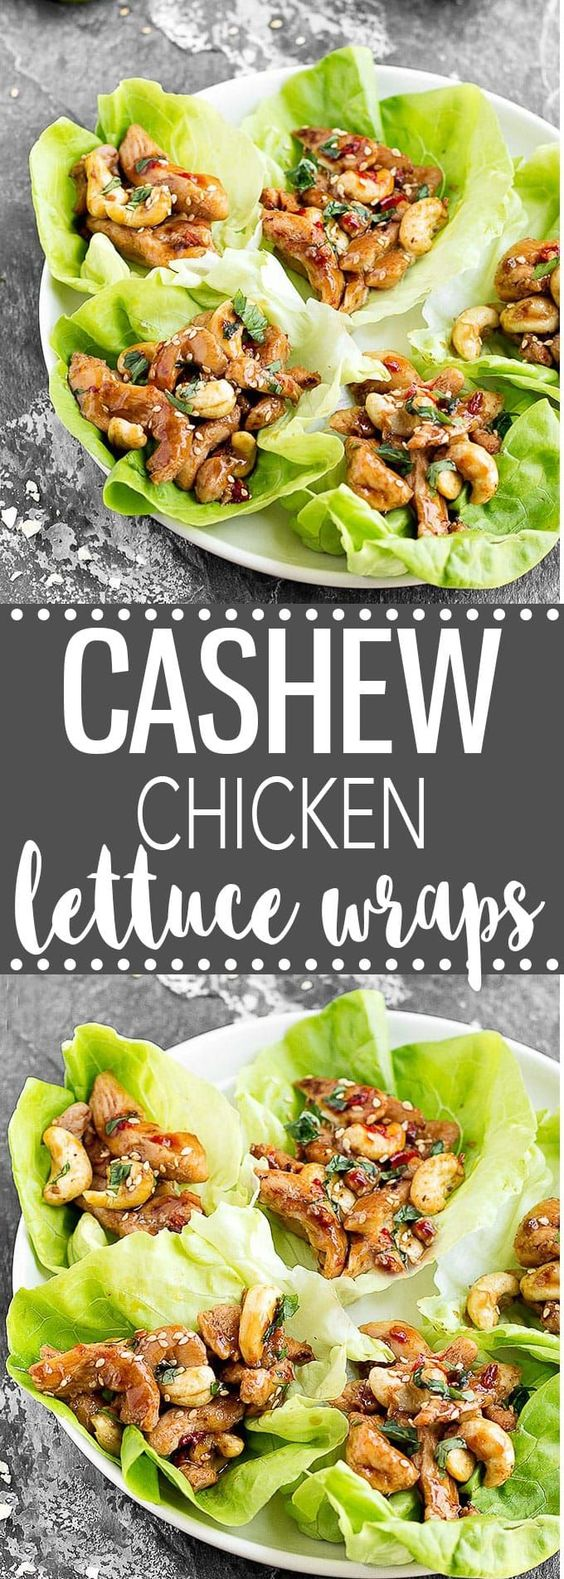 CASHEW CHICKEN LETTUCE WRAPS #CASHEW #CHICKEN #LETTUCE #WRAPS  #HEALTHYFOOD #EASYRECIPES #DINNER #LAUCH #DELICIOUS #EASY #HOLIDAYS #RECIPE #DESSERTS #SPECIALDIET #WORLDCUISINE #CAKE #APPETIZERS #HEALTHYRECIPES #DRINKS #COOKINGMETHOD #ITALIANRECIPES #MEAT #VEGANRECIPES #COOKIES #PASTA #FRUIT #SALAD #SOUPAPPETIZERS #NONALCOHOLICDRINKS #MEALPLANNING #VEGETABLES #SOUP #PASTRY #CHOCOLATE #DAIRY #ALCOHOLICDRINKS #BULGURSALAD #BAKING #SNACKS #BEEFRECIPES #MEATAPPETIZERS #MEXICANRECIPES #BREAD #ASIANRECIPES #SEAFOODAPPETIZERS #MUFFINS #BREAKFASTANDBRUNCH #CONDIMENTS #CUPCAKES #CHEESE #CHICKENRECIPES #PIE #COFFEE #NOBAKEDESSERTS #HEALTHYSNACKS #SEAFOOD #GRAIN #LUNCHESDINNERS #MEXICAN #QUICKBREAD #LIQUOR